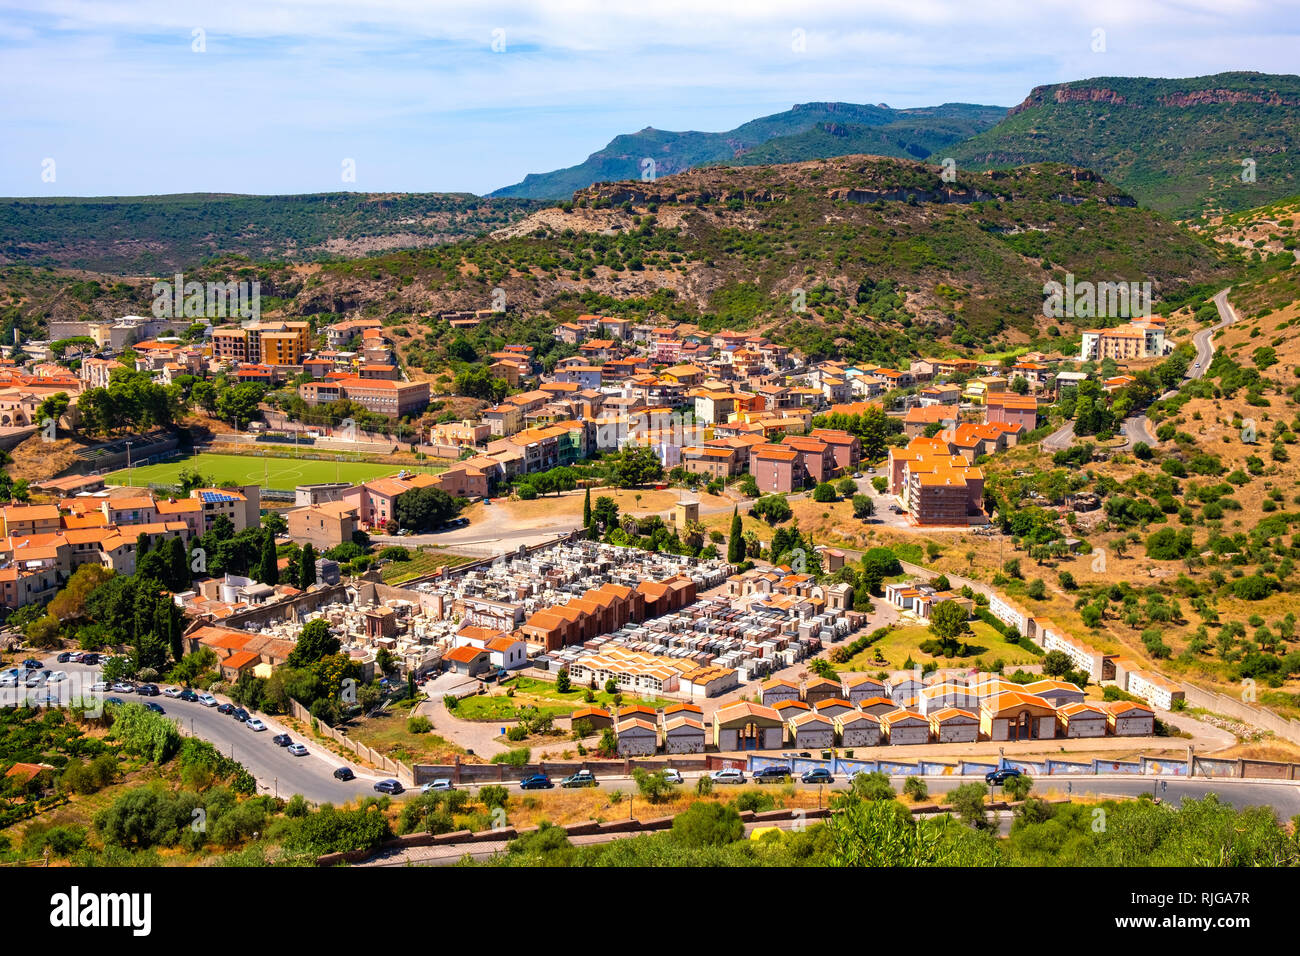 Bosa, Sardinia / Italy - 2018/08/13: Panoramic view of the town of Bosa and surrounding hills seen from Malaspina Castle hill Stock Photo